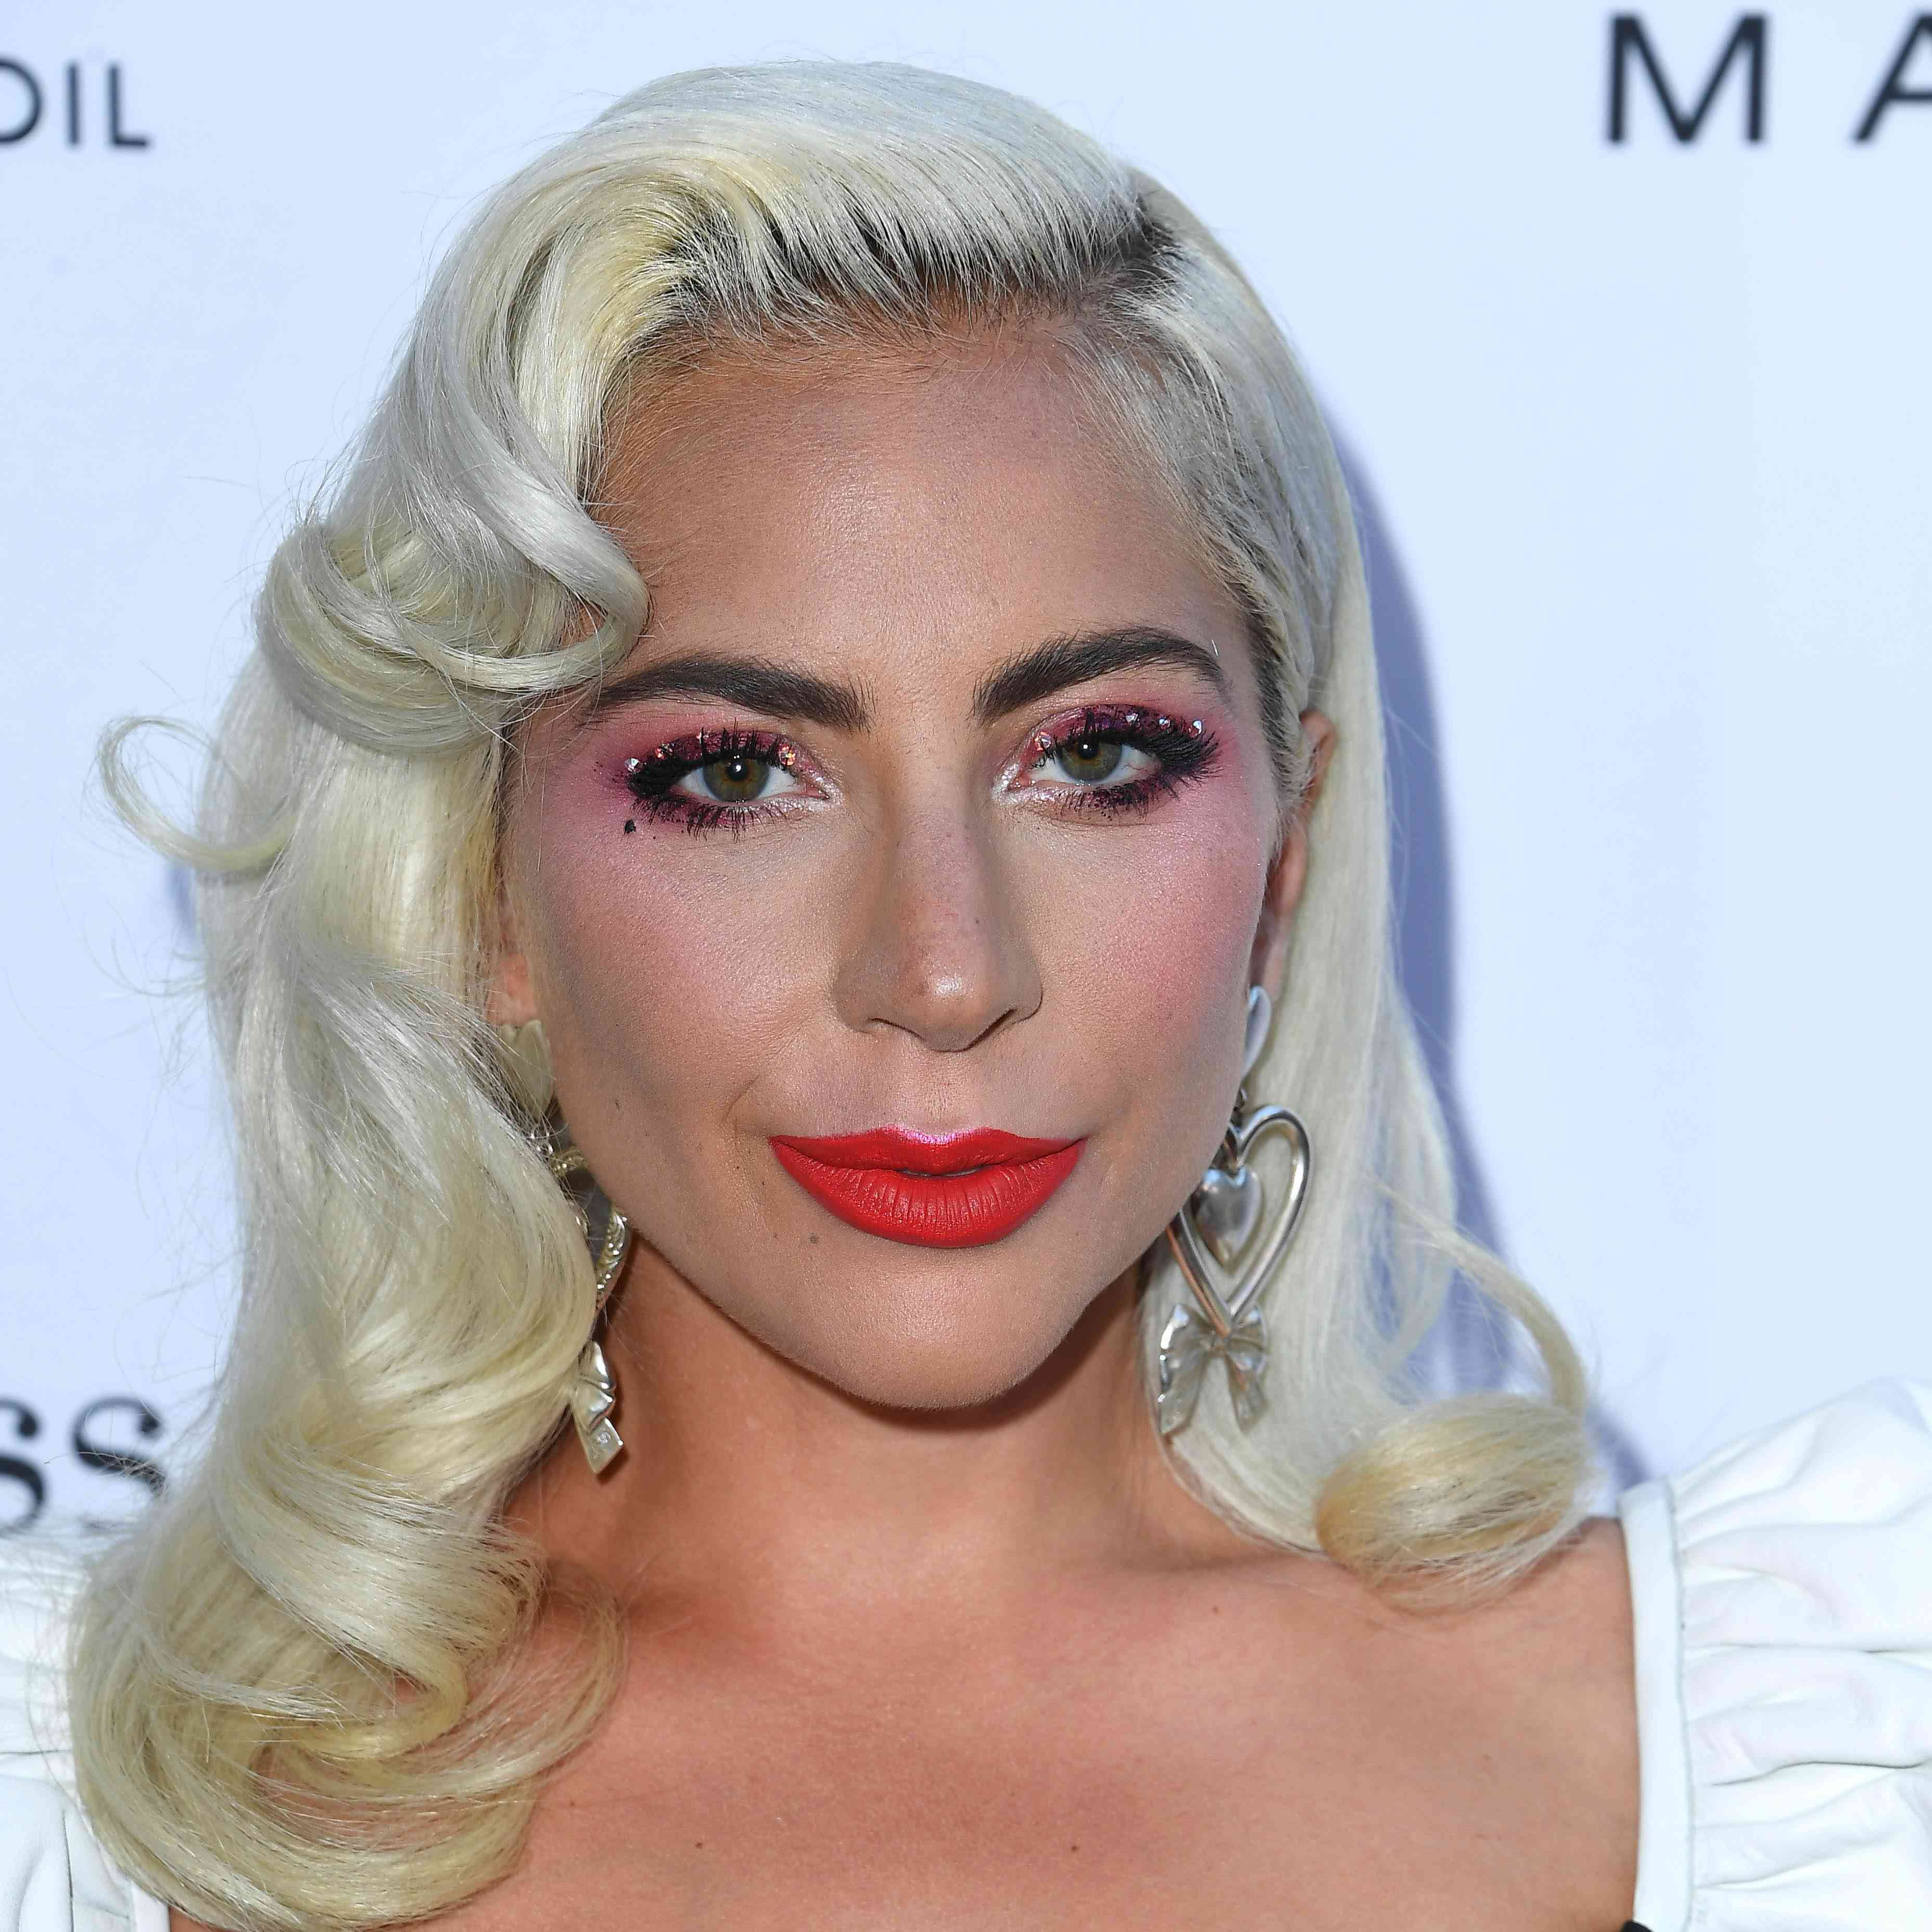 Lady Gaga Was A Bridesmaid In Her Makeup Artist's Wedding